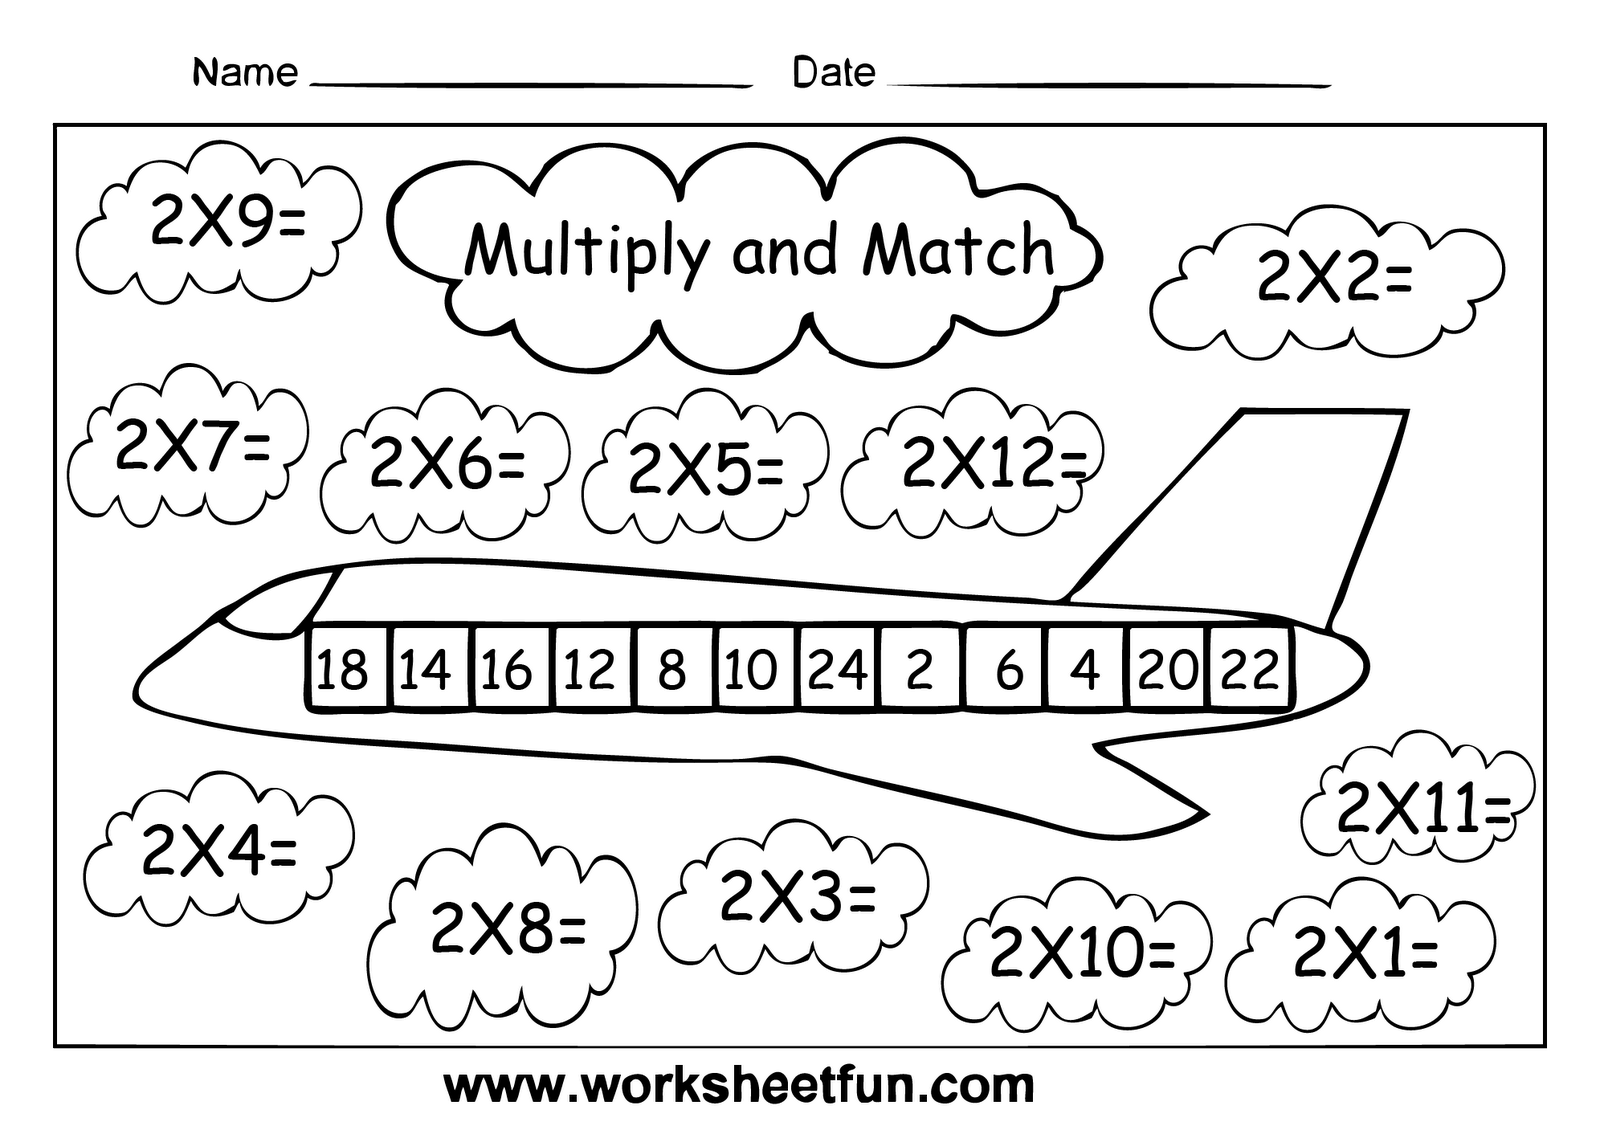 Fun Free Printable Math Worksheets : Arab unity school grade c maths multiply by